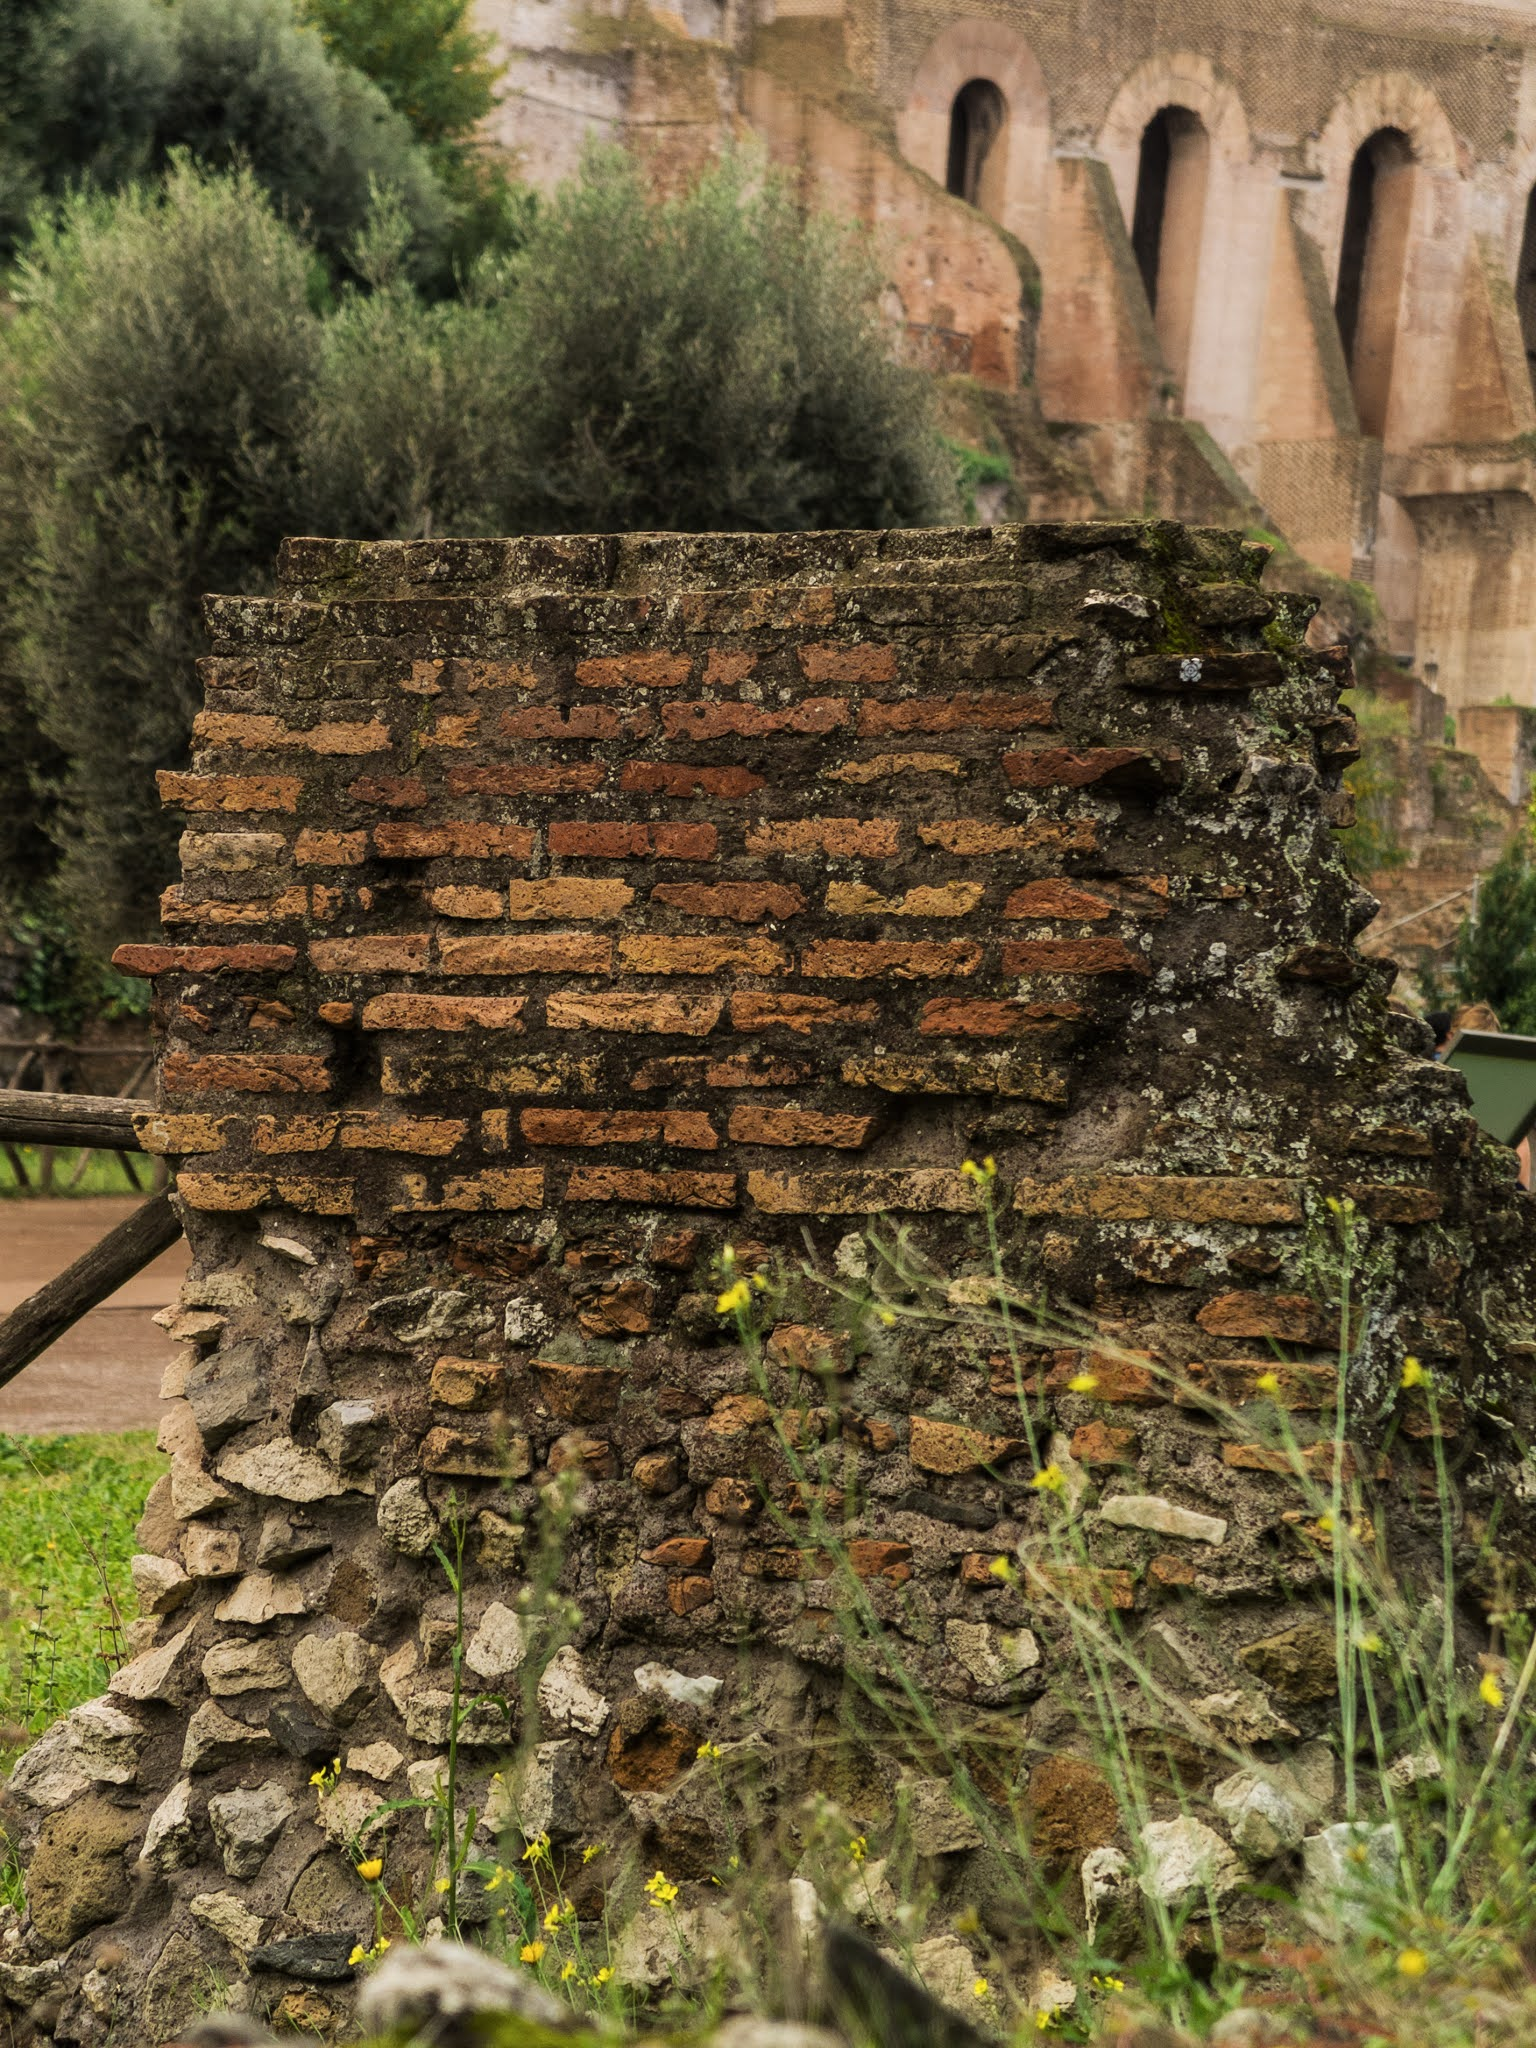 Close up of brick and stone wall remnants of Ancient Rome on Palatine Hill.